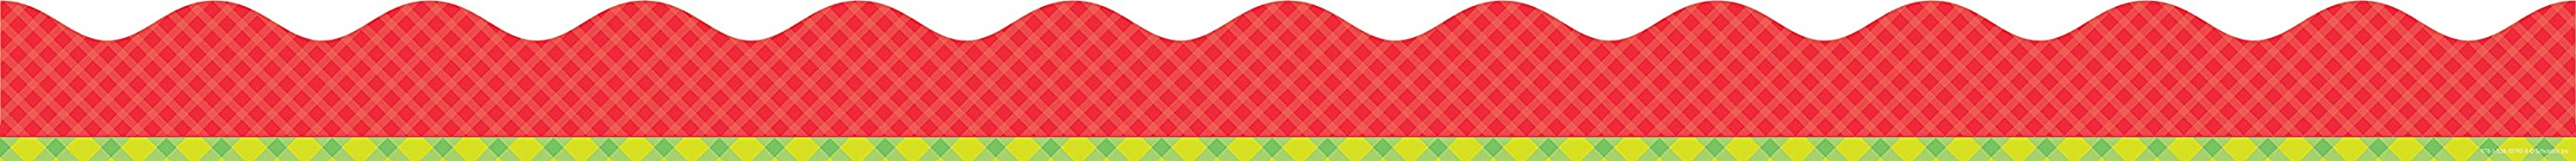 Tape It Up!: Pretty in Plaid Scalloped Trimmer